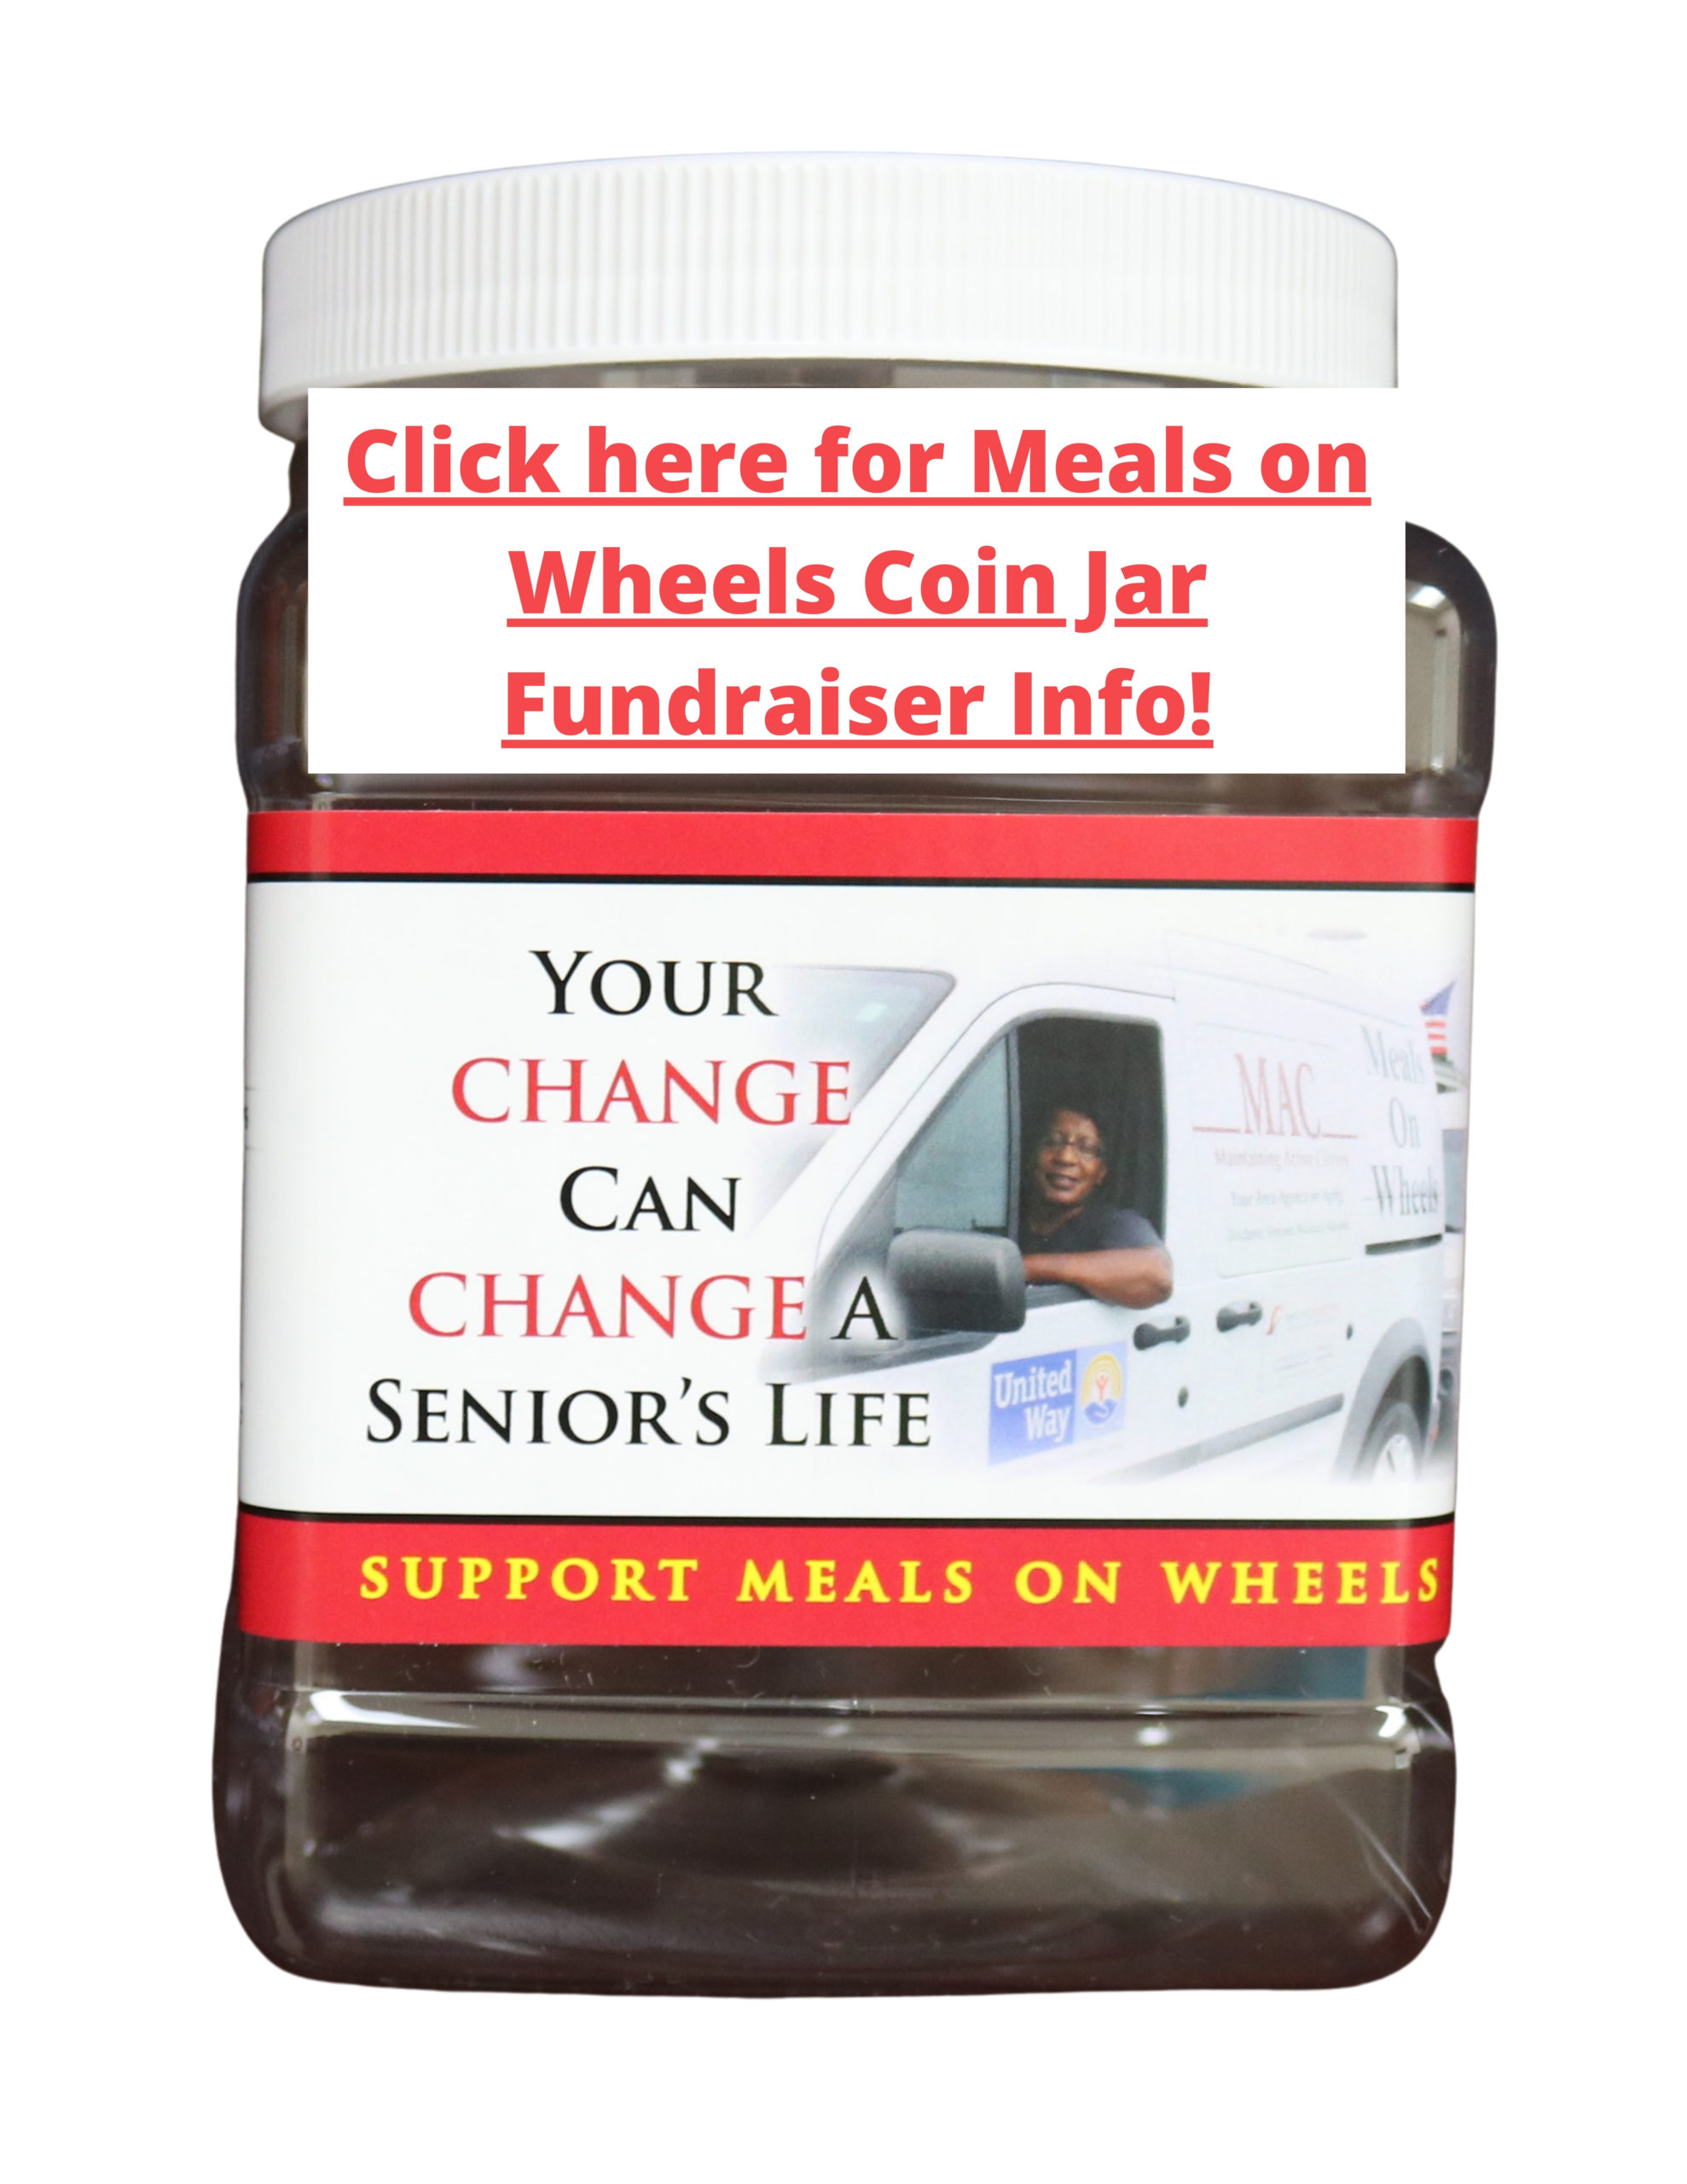 Information on our Meals on Wheels Coin Jar Fundraiser